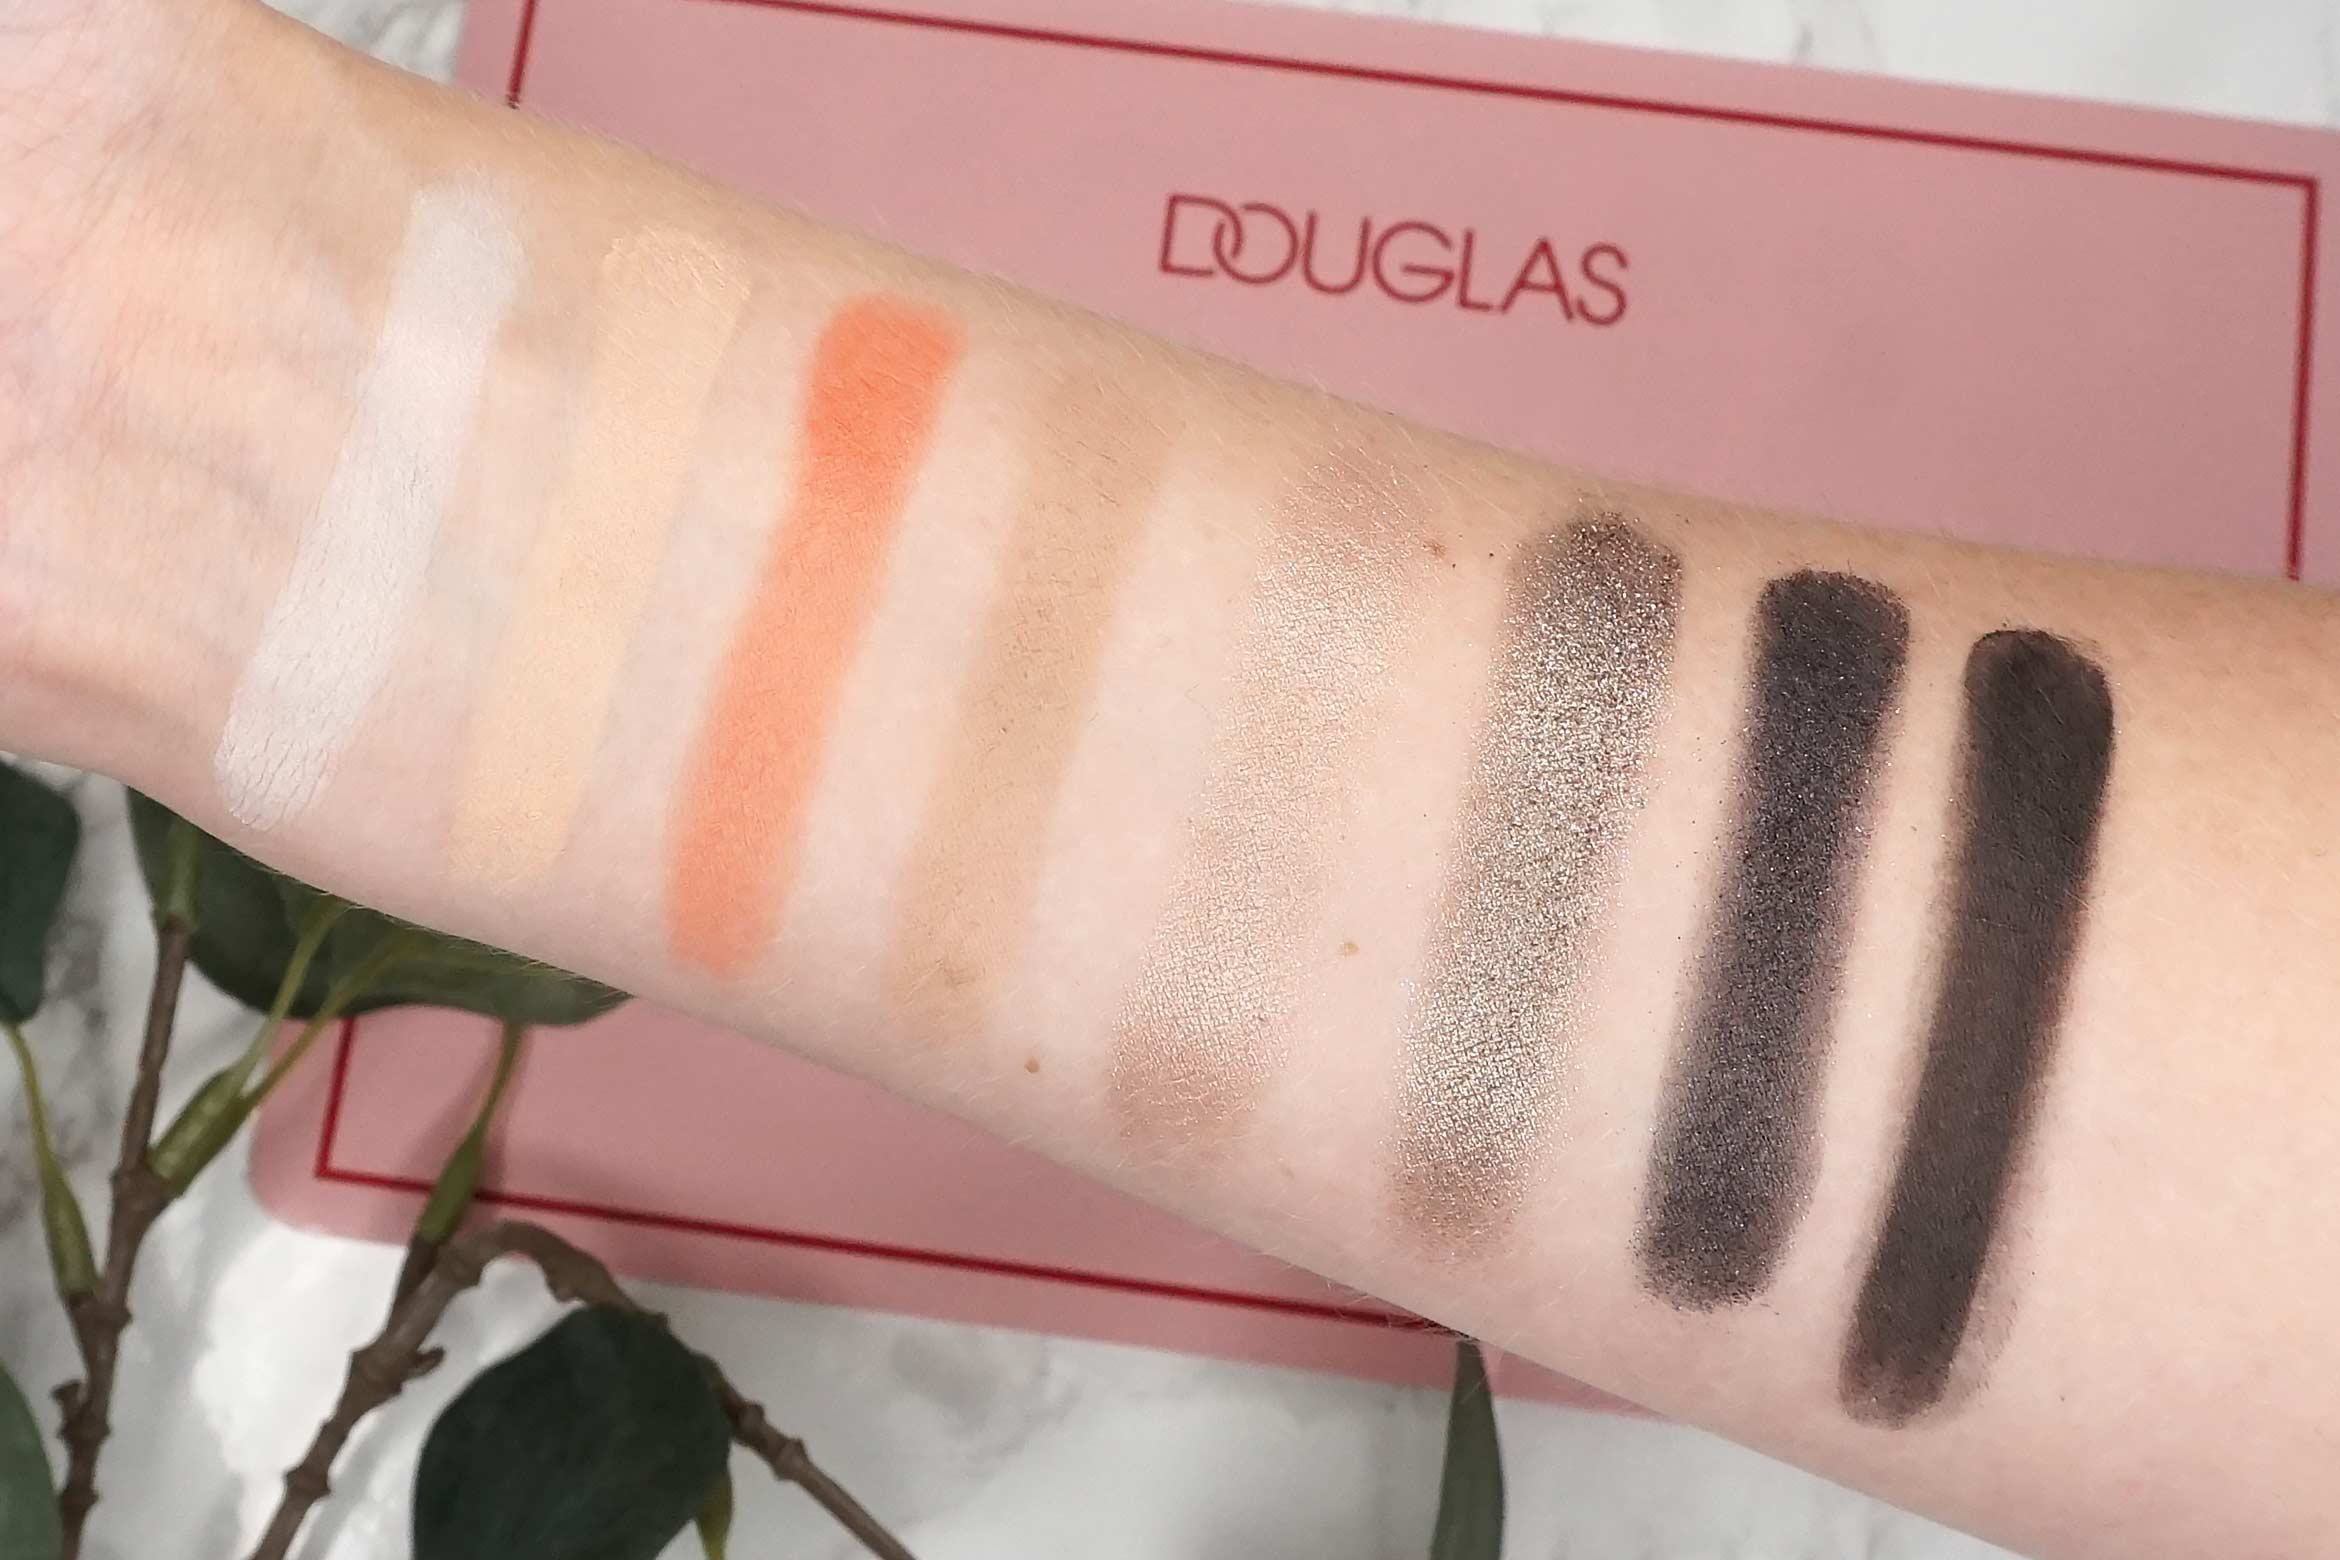 douglas-deluxe-palette-swatch-review